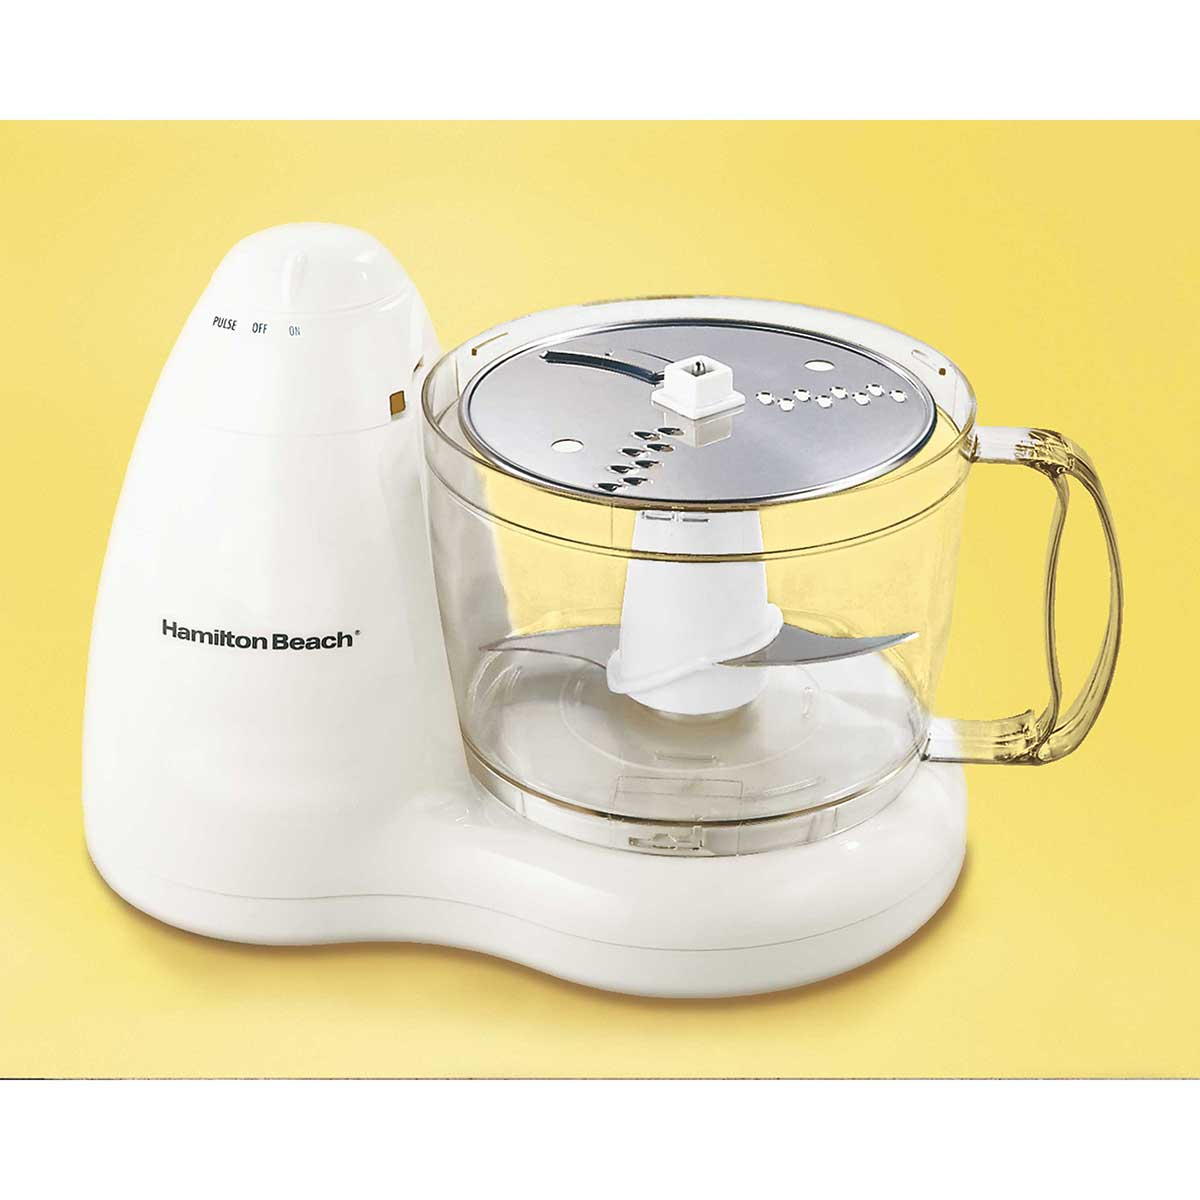 8-Cup Food Processor with 2 Speeds plus Pulse, White (70450)